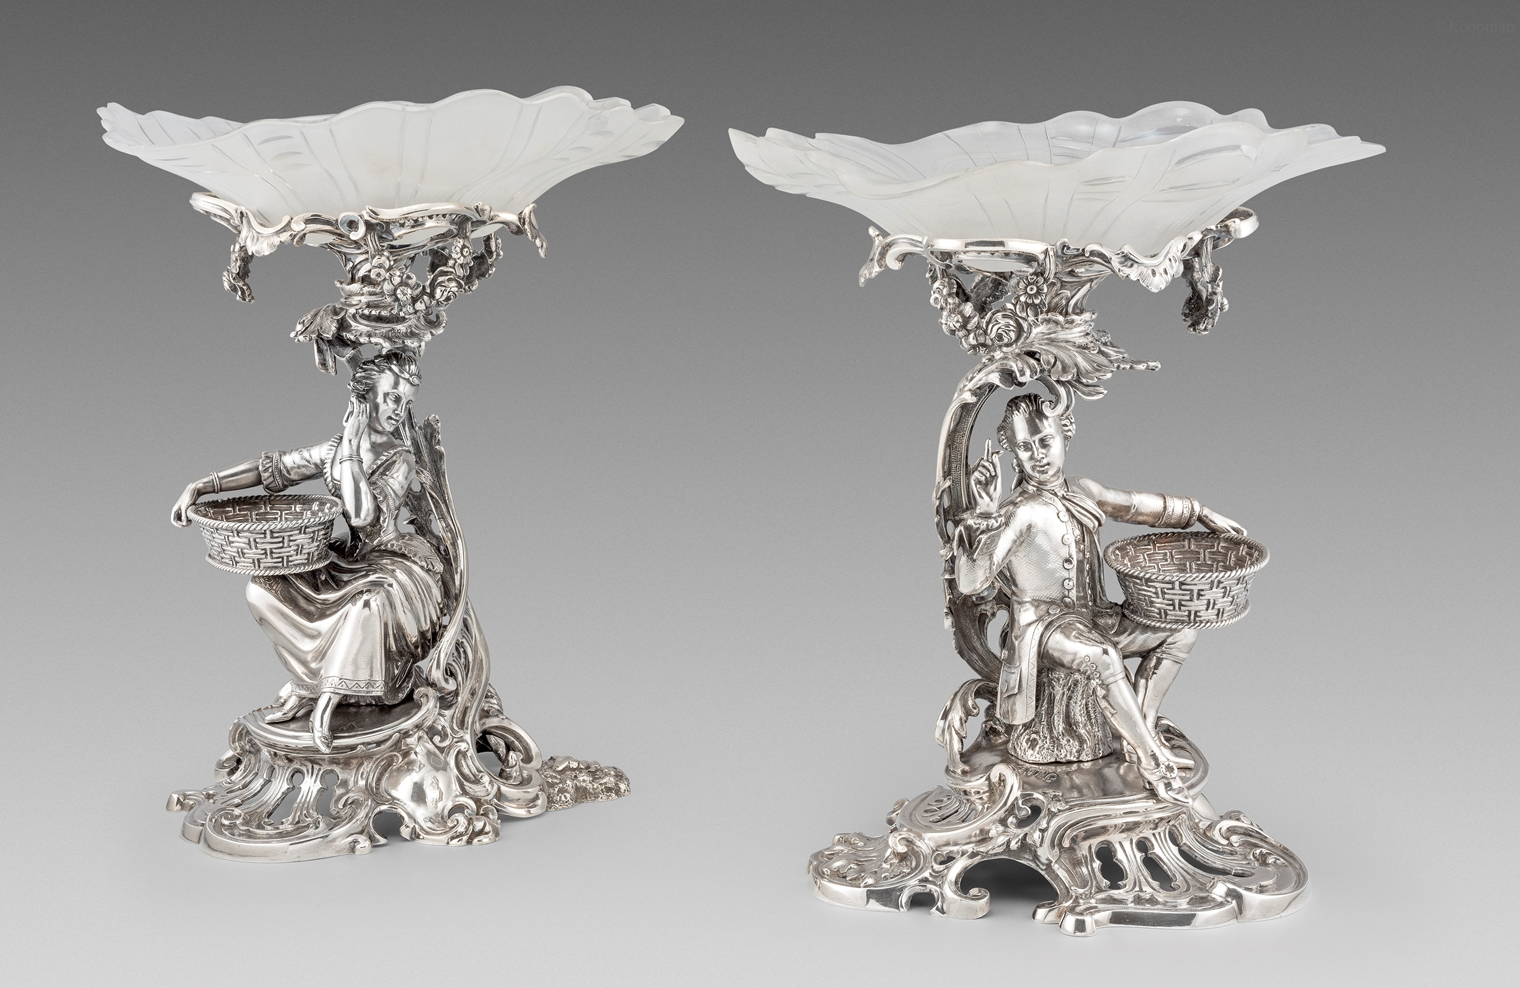 An Elegant Pair of Victorian Figural Comports